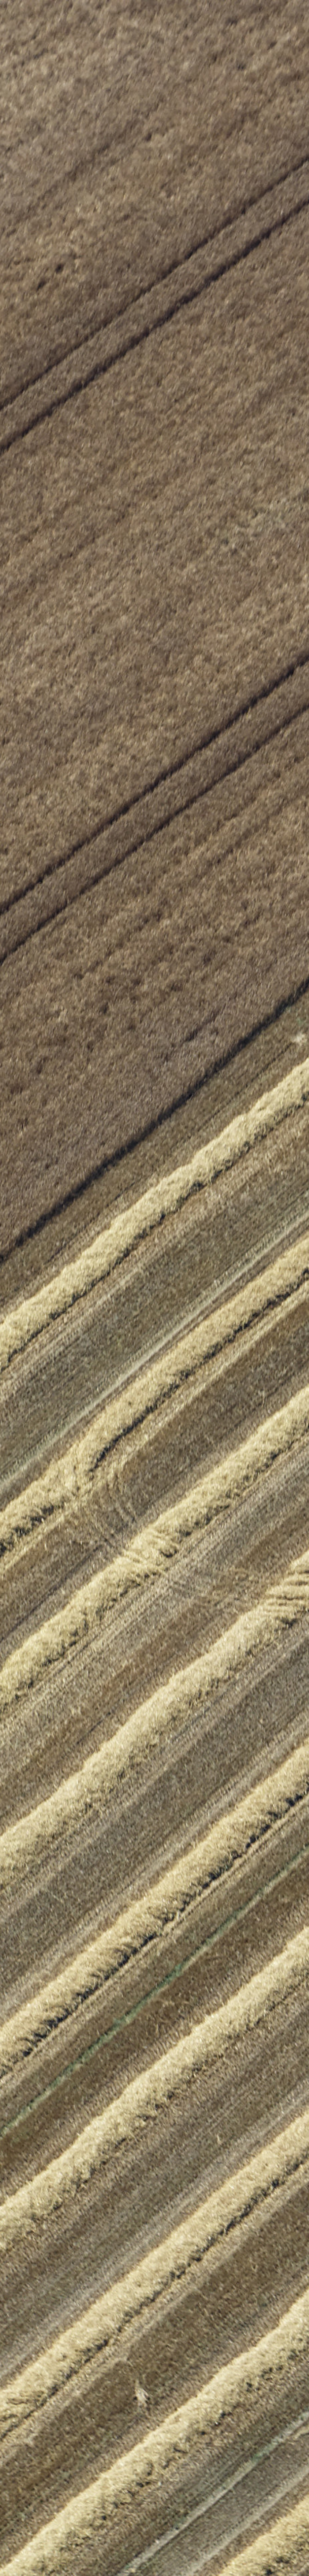 Aerial view of a combine harvester harvesting grain, a tractor pulls a trailer full of cereal grains away - Klaus Leidorf Aerial Photography